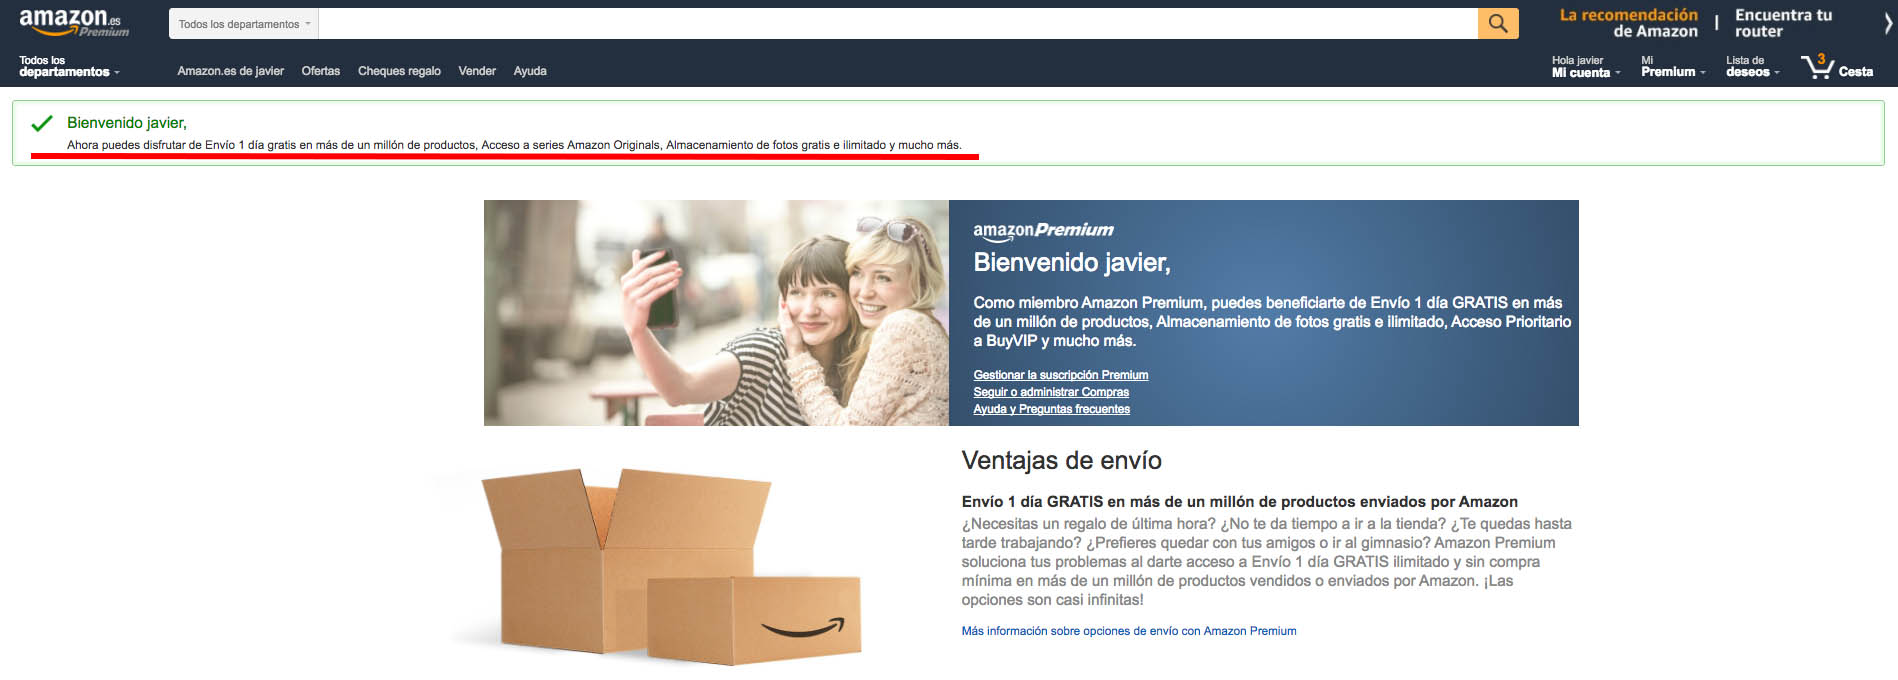 Cancelar Amazon Premiun